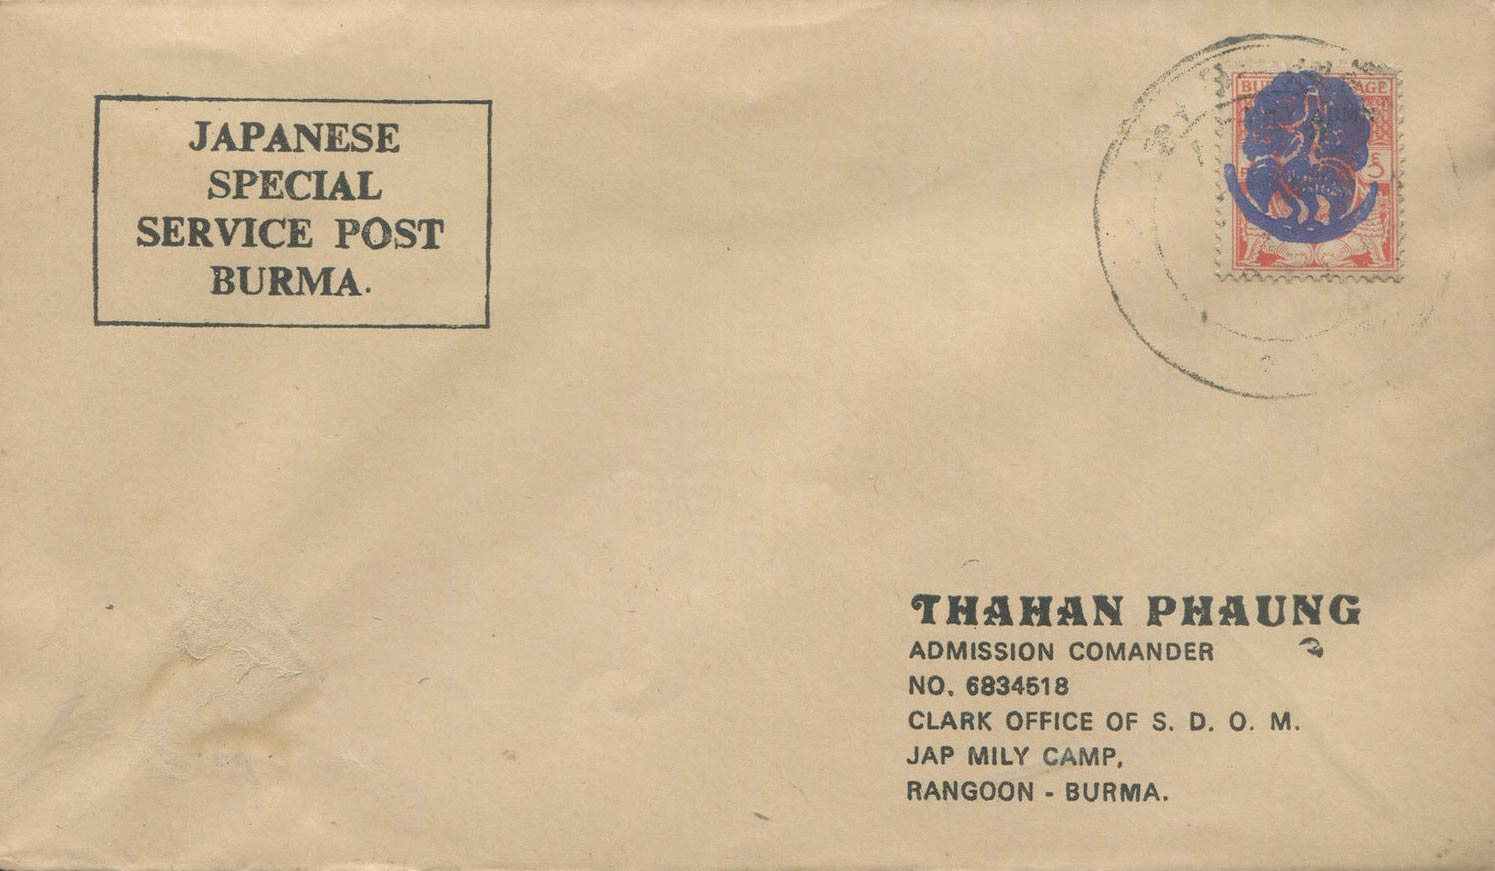 Burma_Japanese-Special-Service-Post_Cover_Forgery6